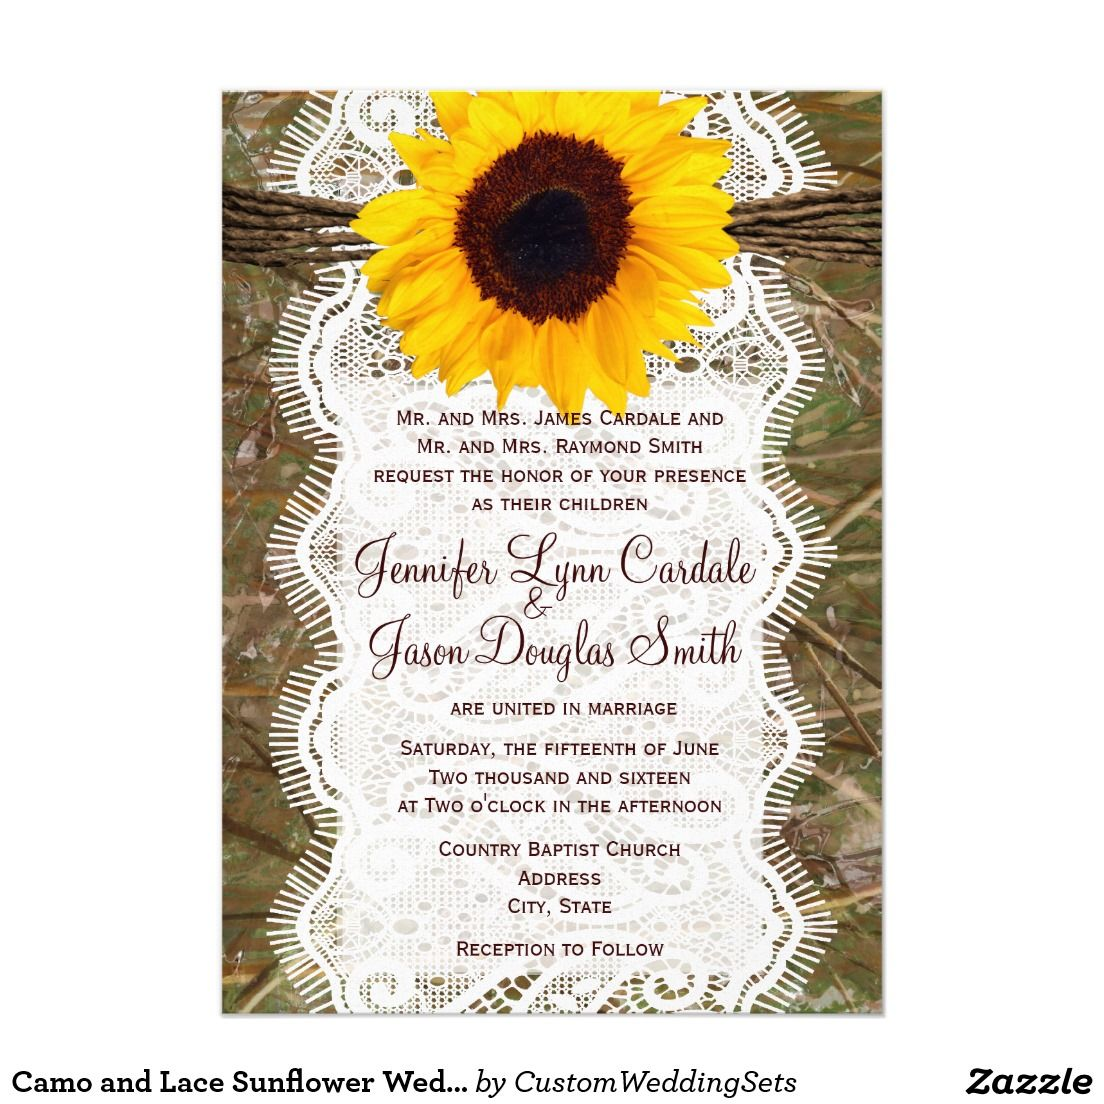 Camo and Lace Sunflower Wedding Invitations | *Sunflower Wedding ...